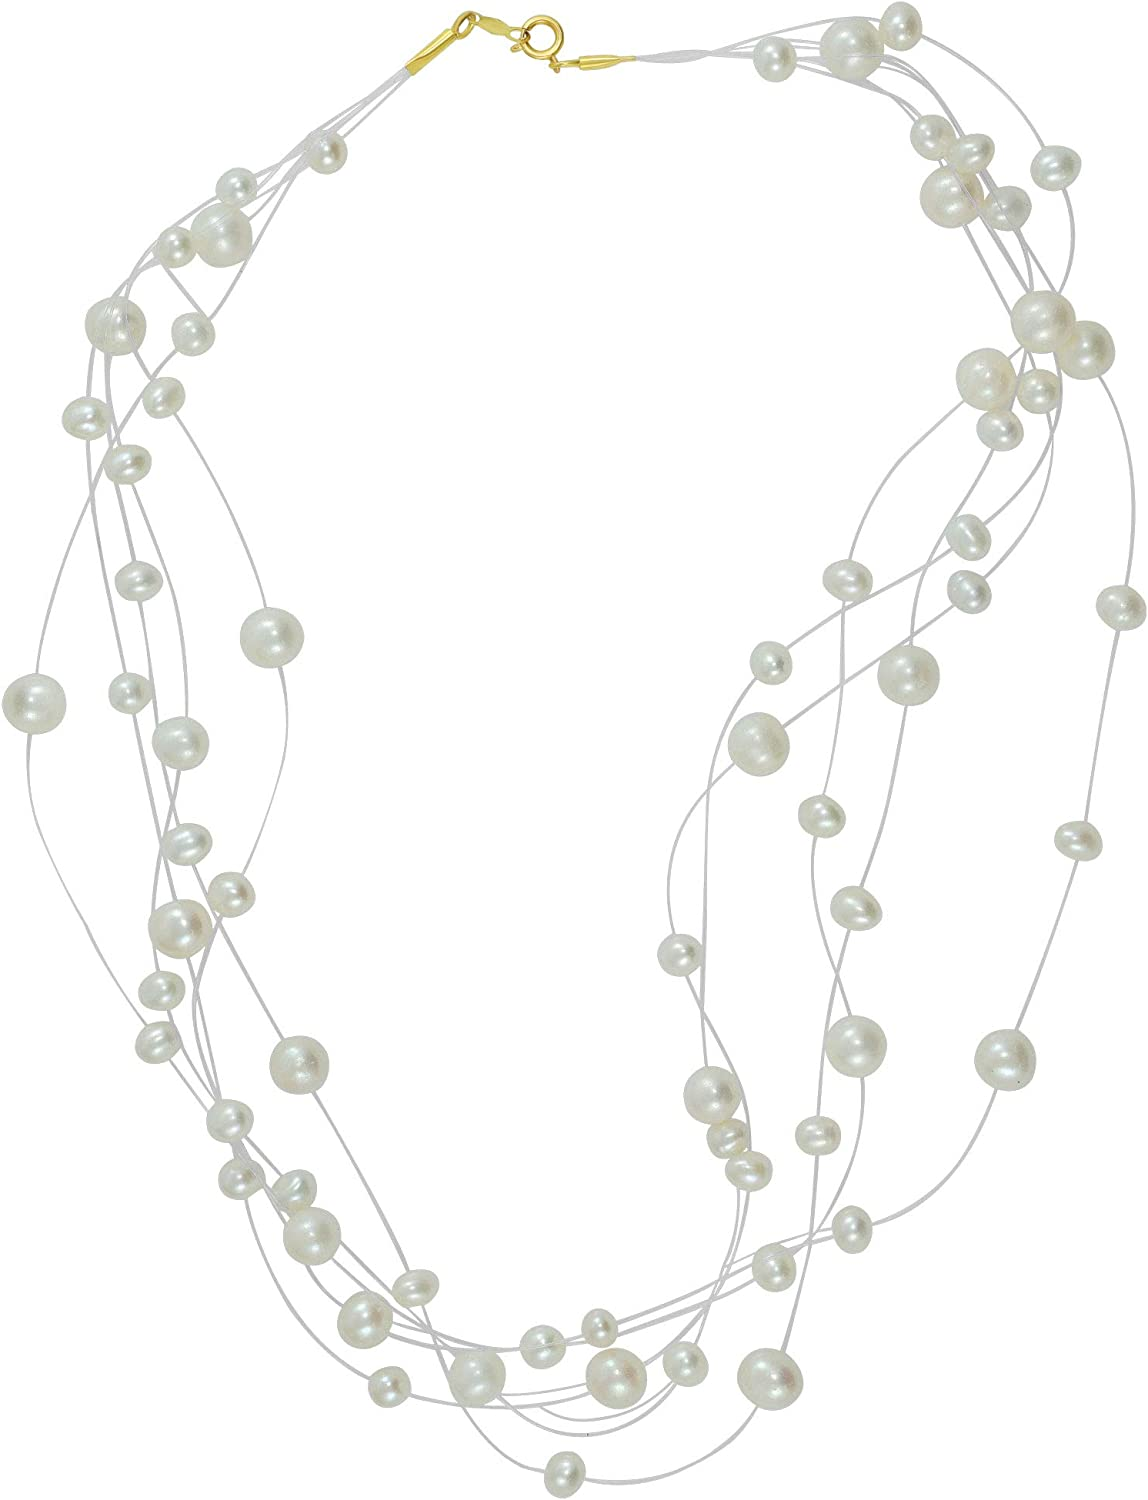 14 Karat Yellow Gold Bridal White and Ivory Freshwater Pearl 16 Inch Necklace, Multi Strand Design with Spring Ring Clasp Lock